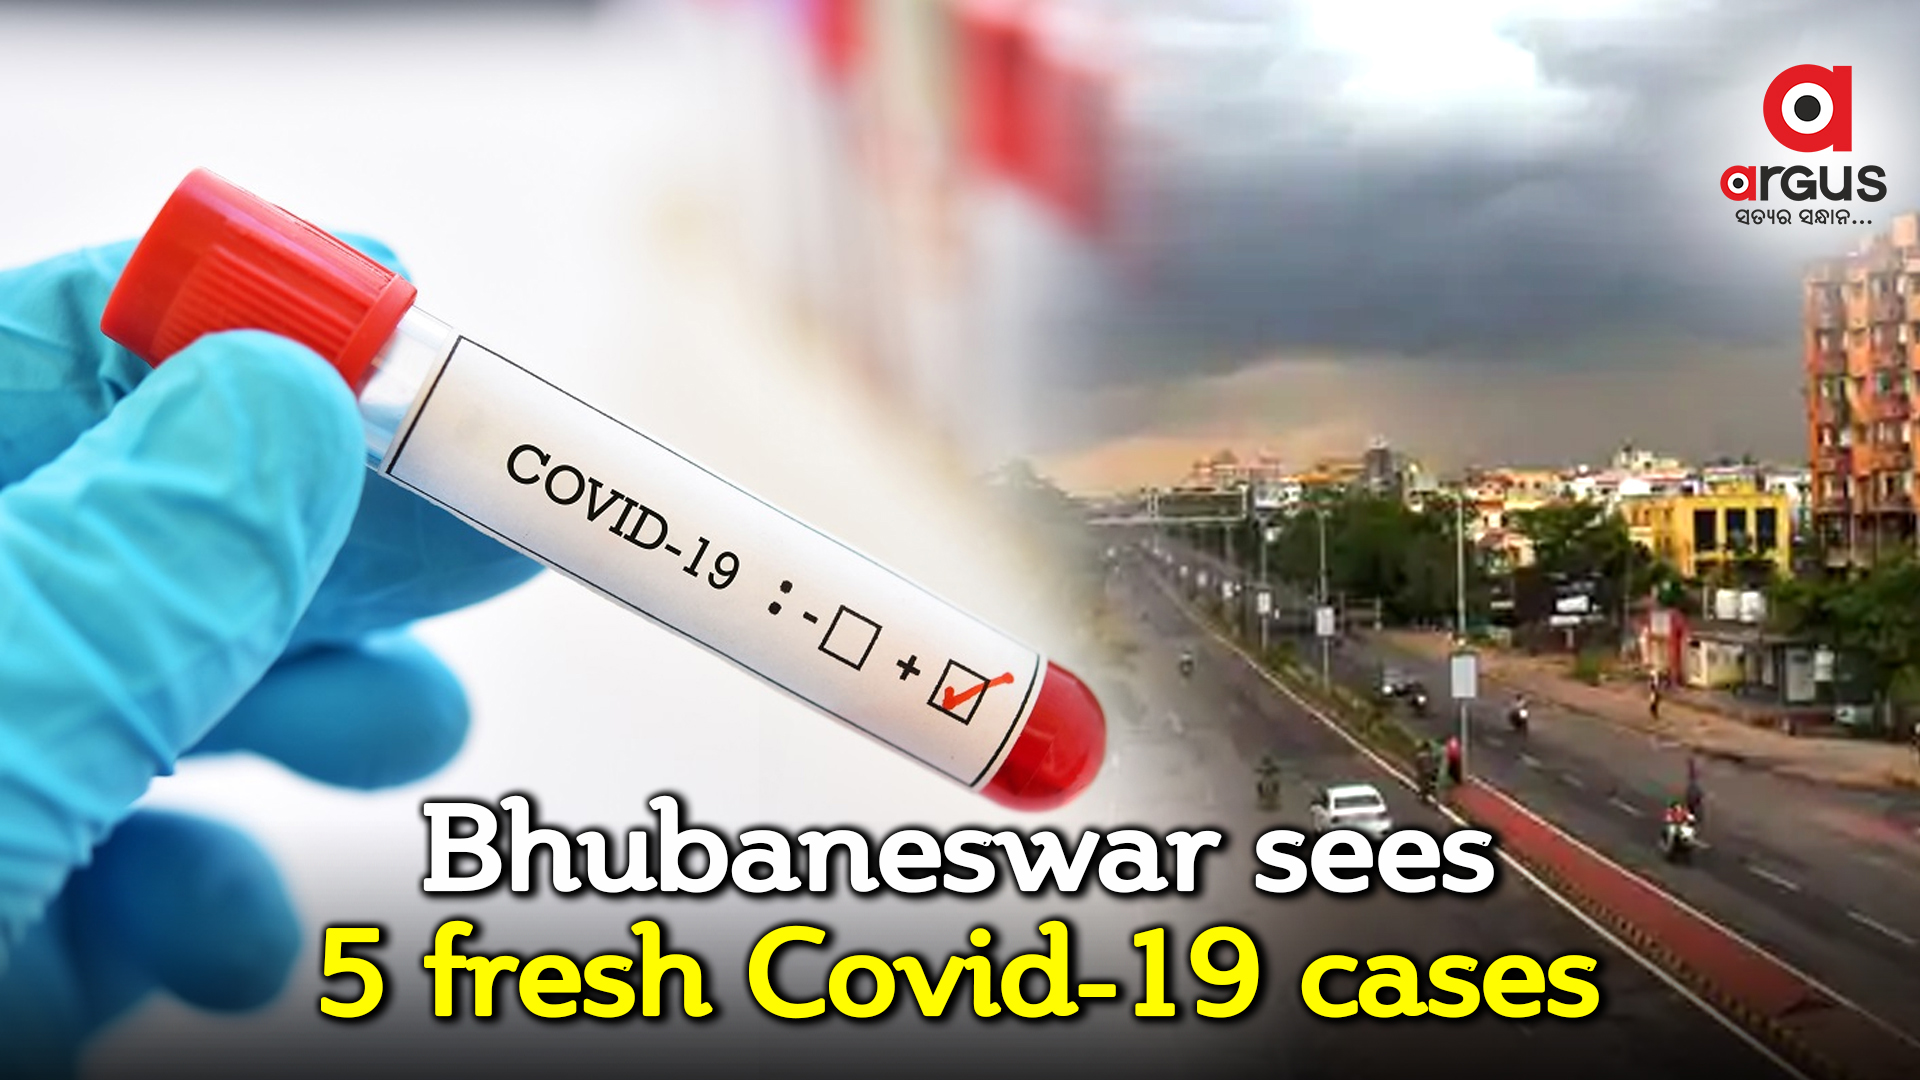 Bhubaneswar reports 5 new Covid-19 cases, 6 recoveries